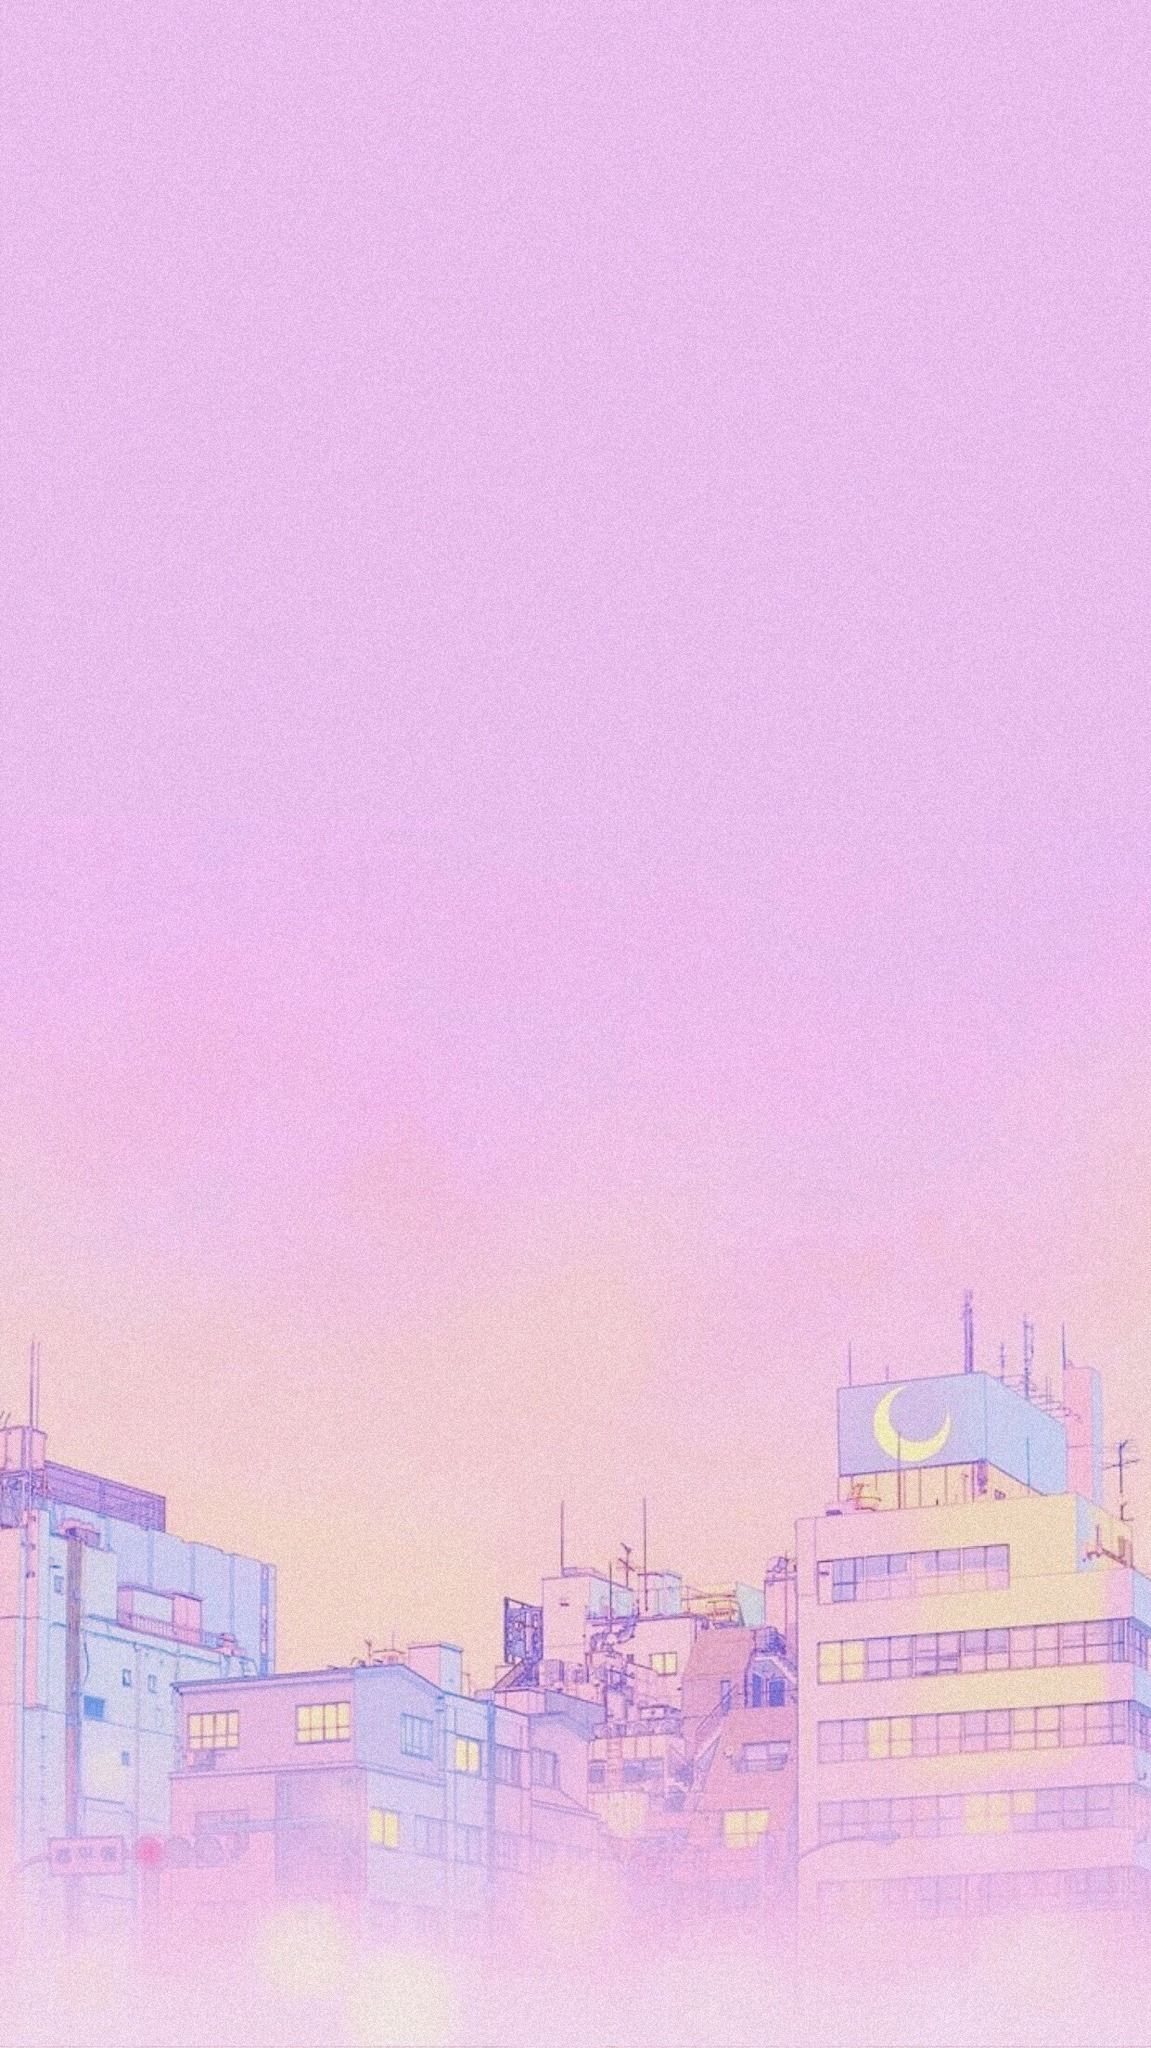 90s Anime Aesthetic In 2020 Cute Pastel Wallpaper Kawaii Wallpaper Anime Wallpaper Iphone